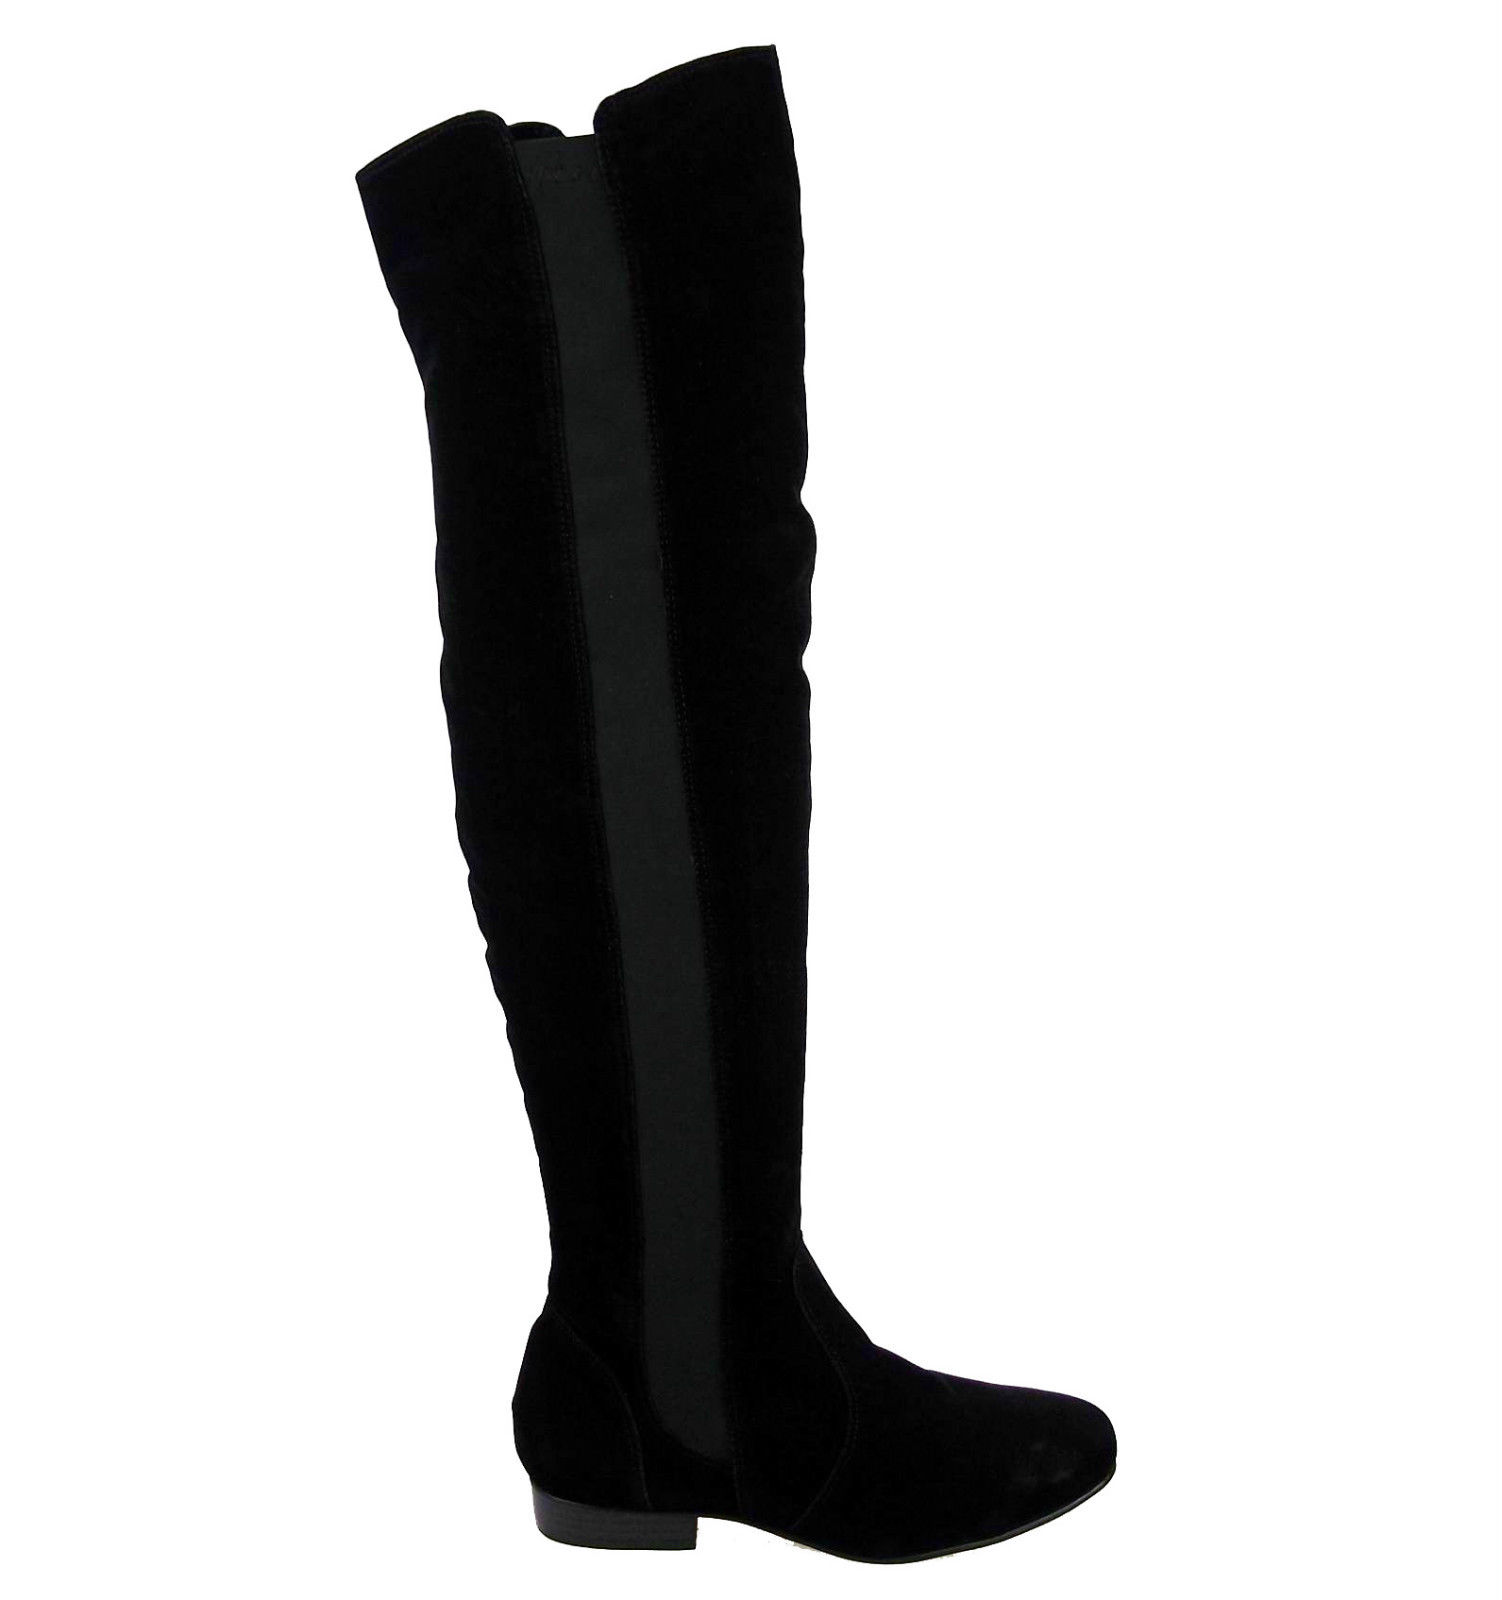 LADIES WOMENS THIGH HIGH STRETCH CALF FLAT BOOTS WIDE LEG OVER ...